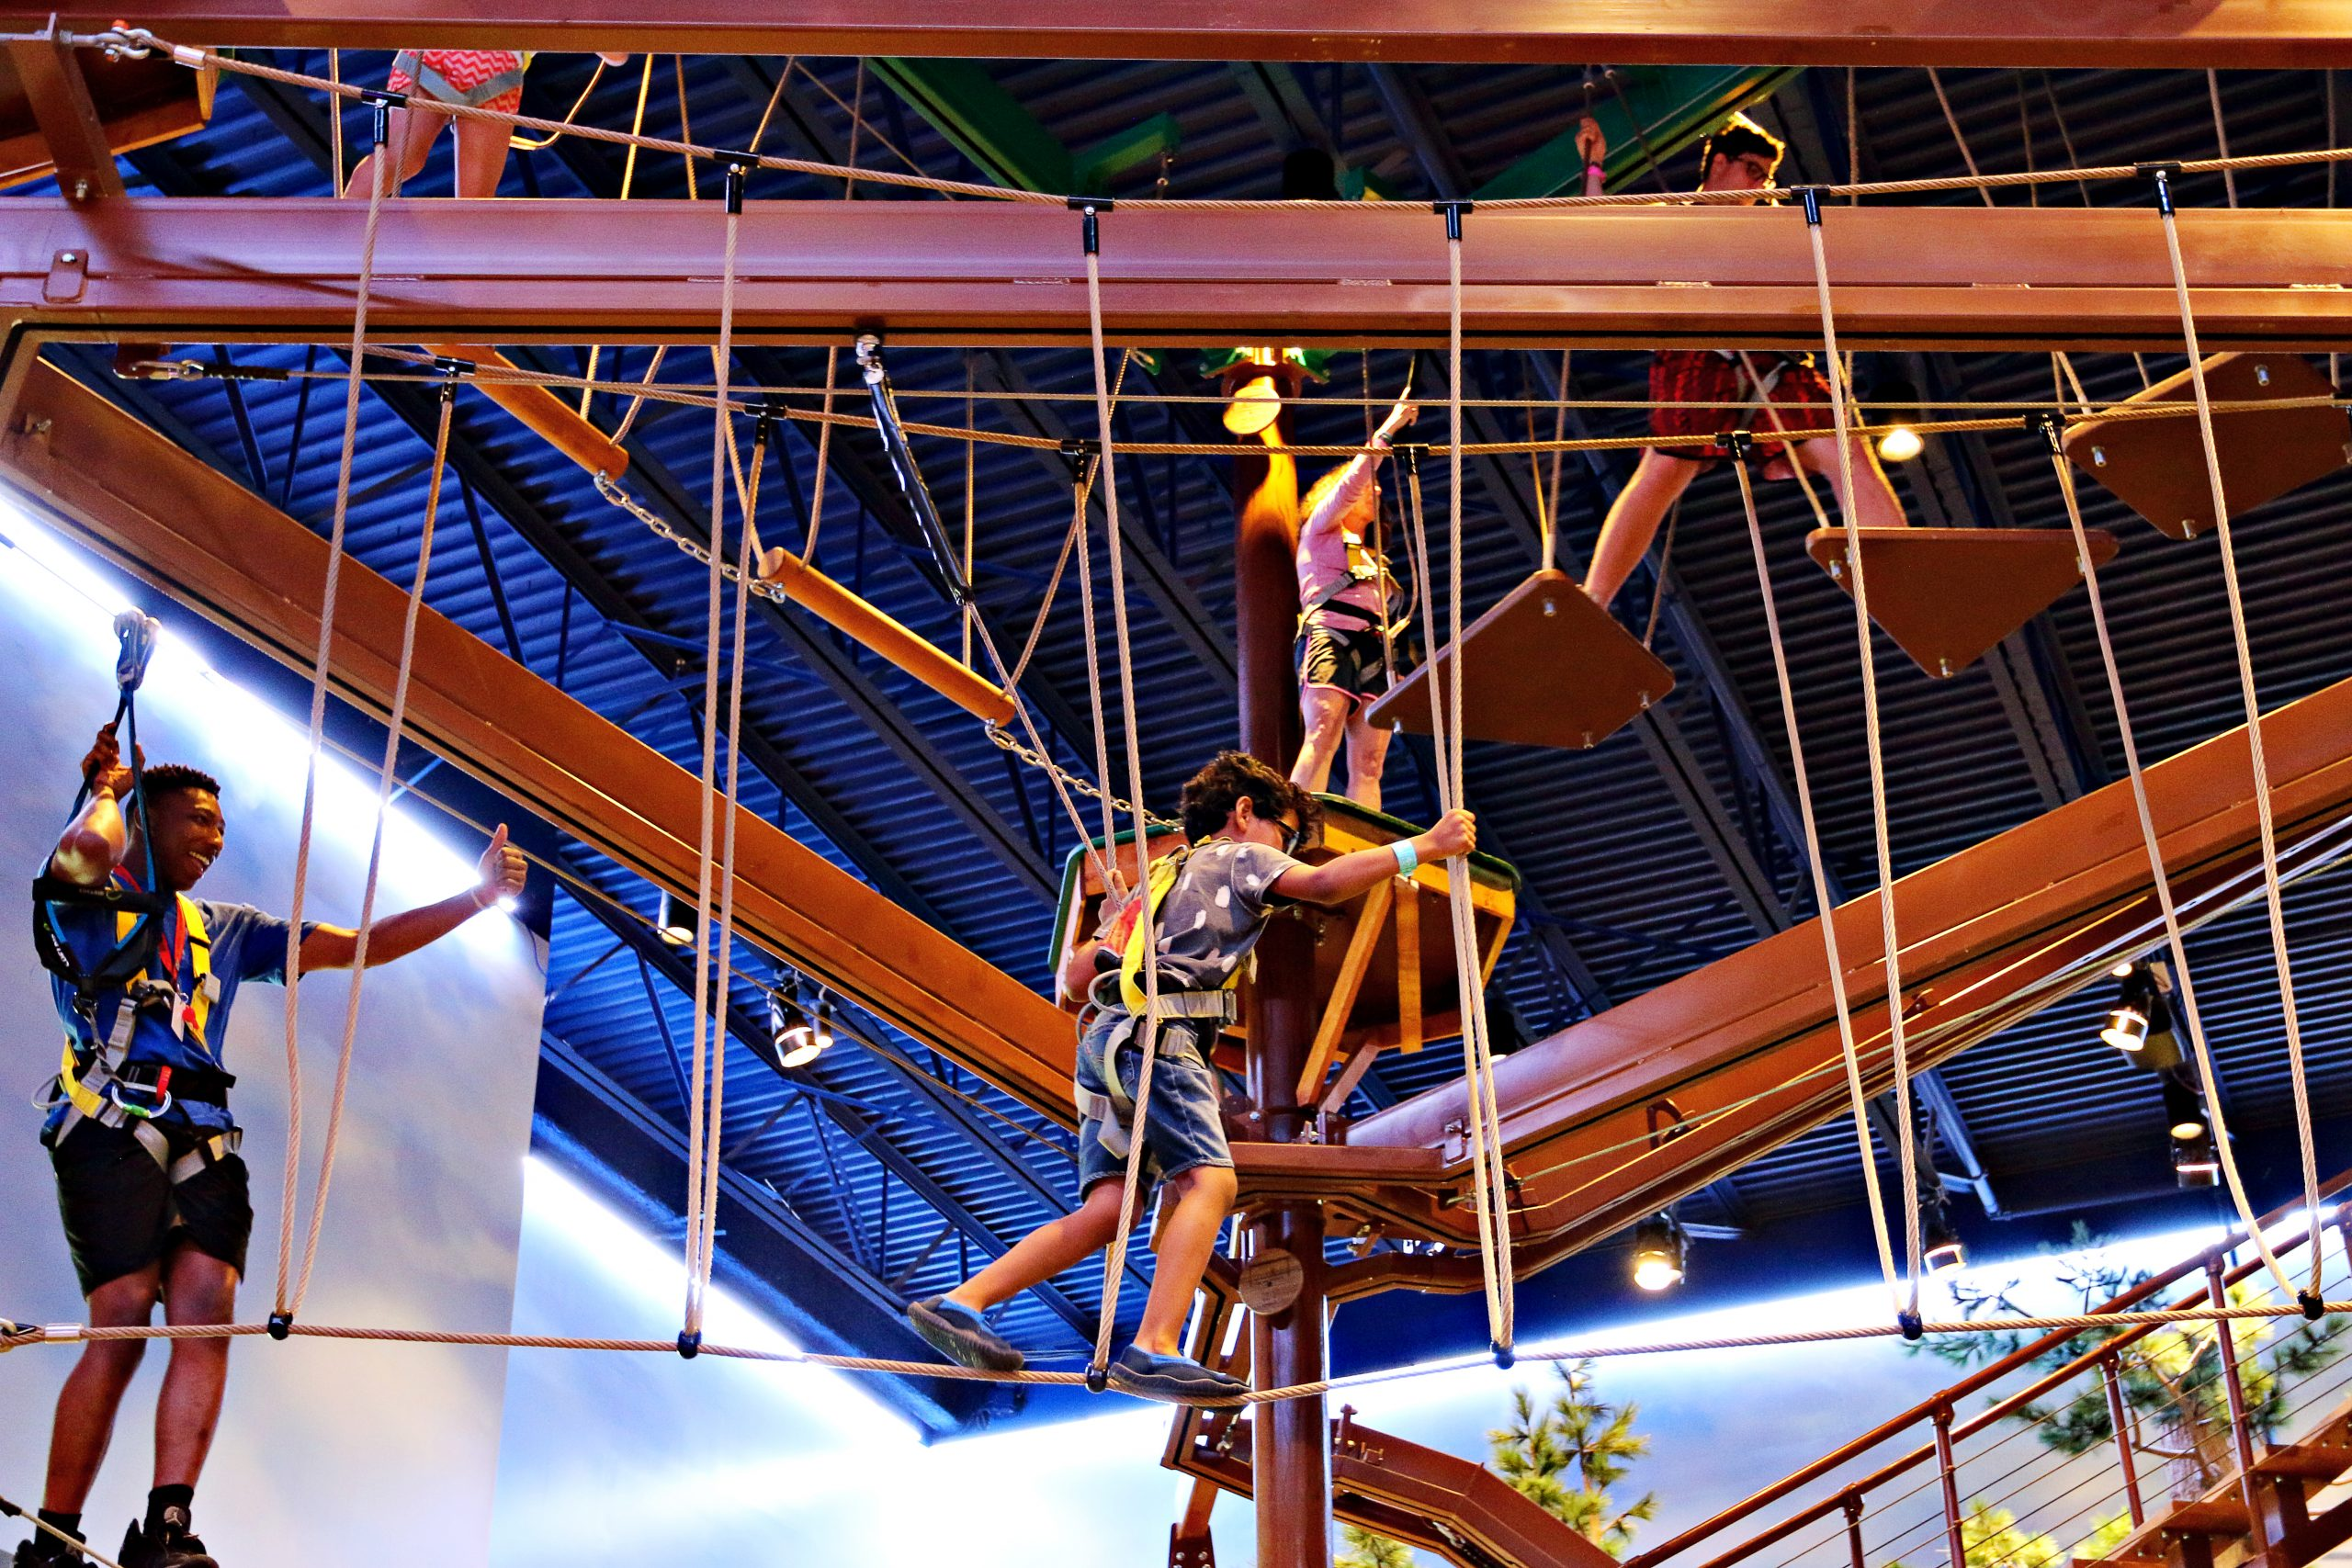 Boy climbing a rope course at Great Wolf Lodge Atlanta in LaGrange, Georgia.